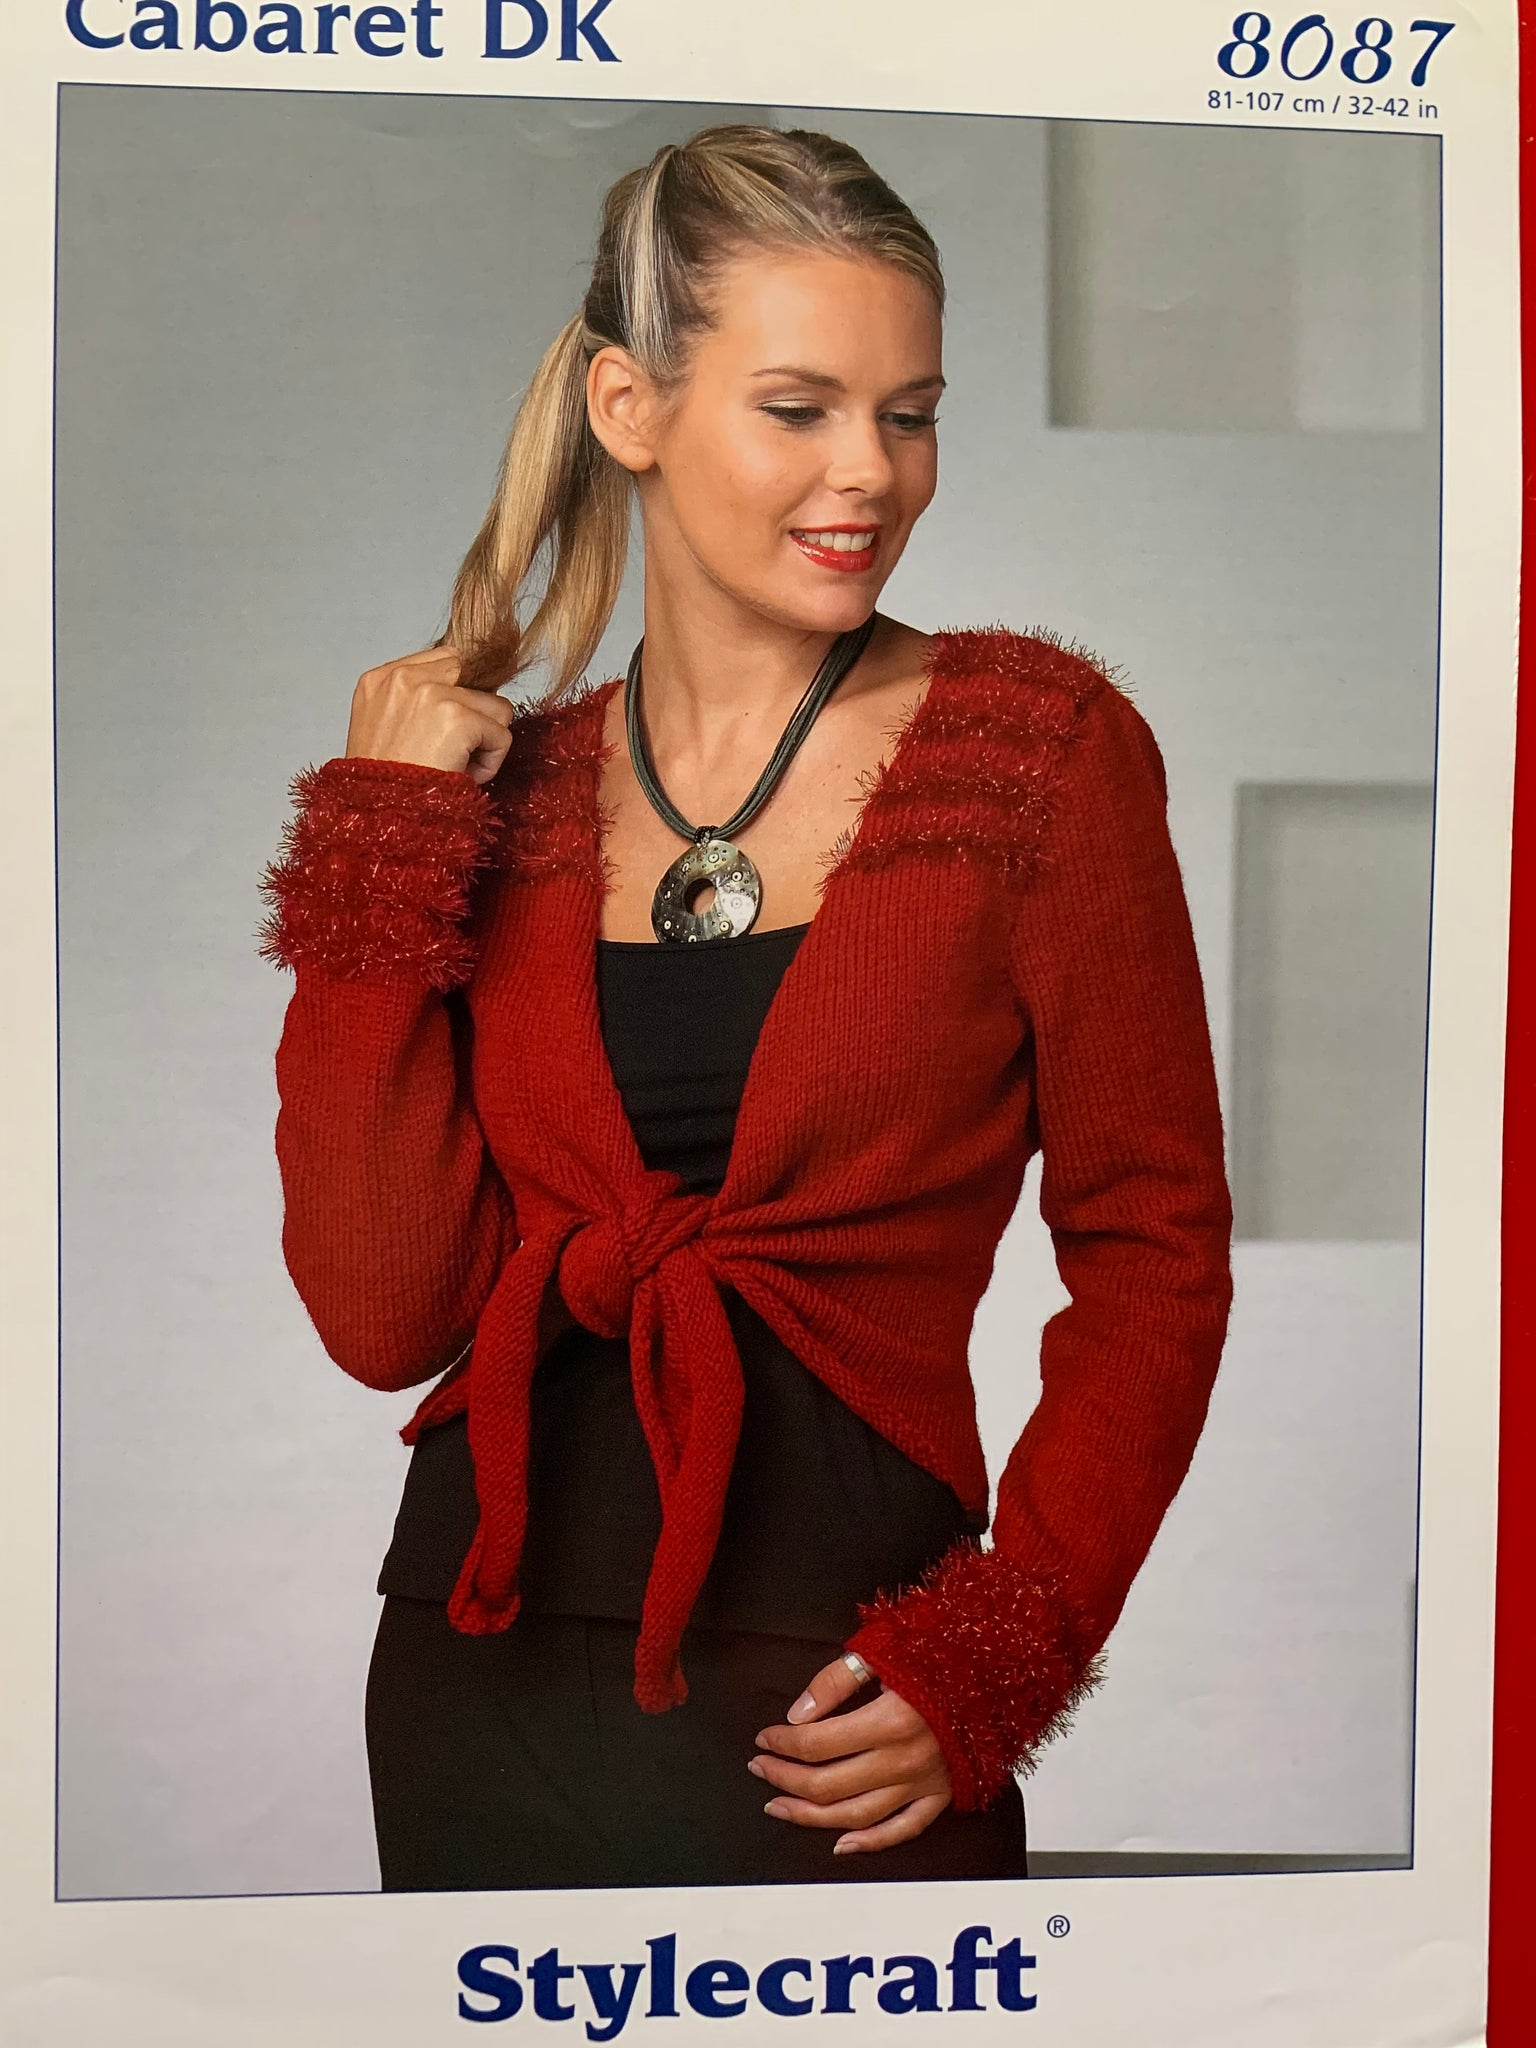 8087 Stylecraft Cabaret Dk ladies cardigan knitting pattern